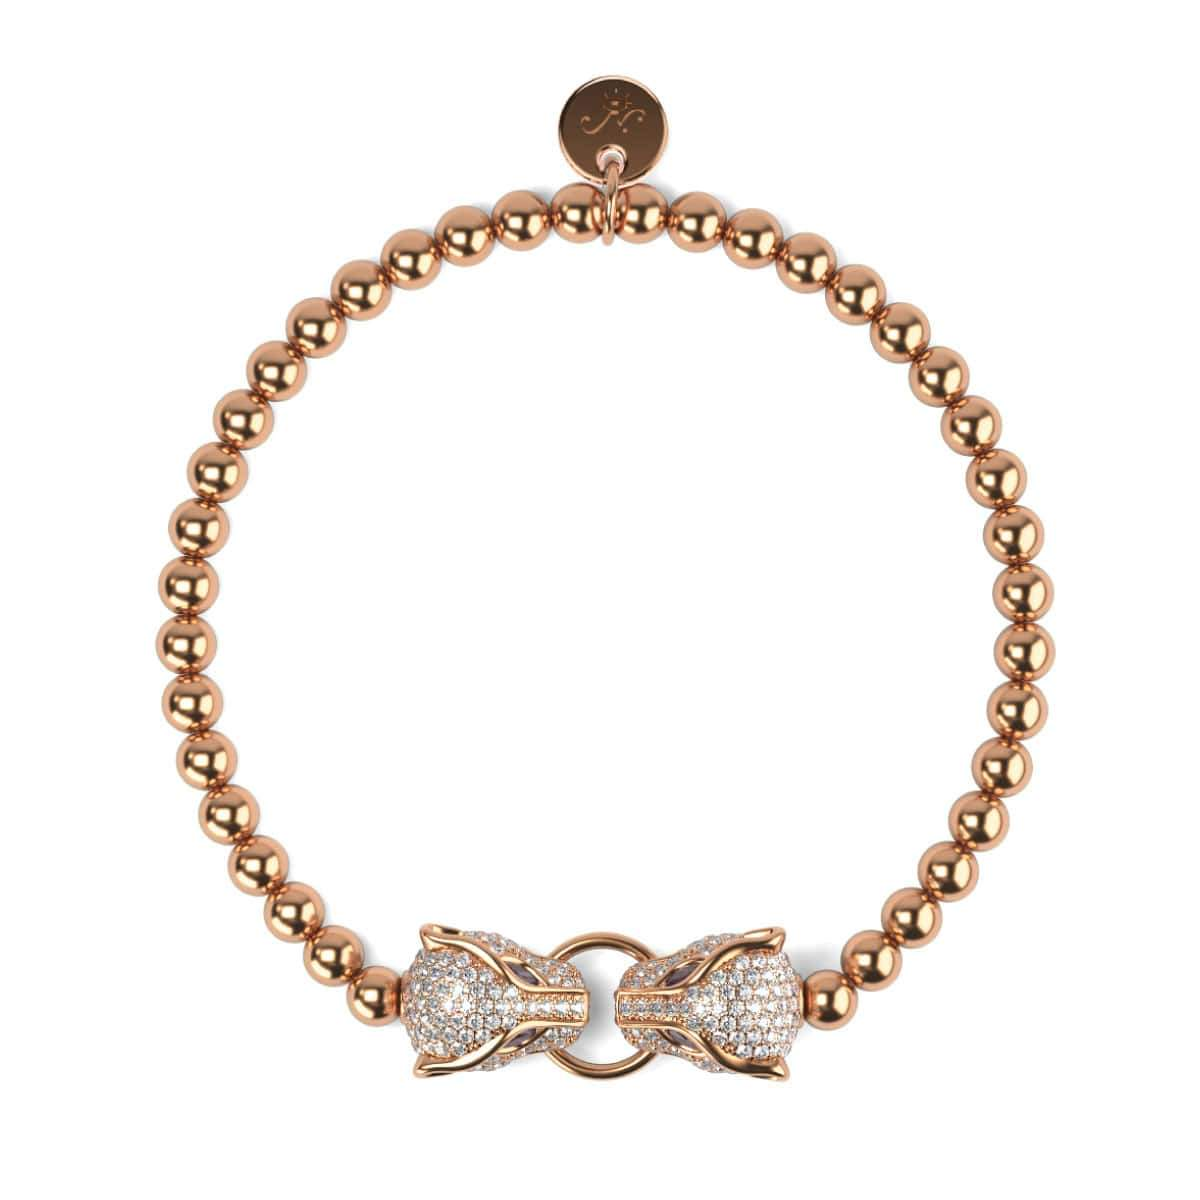 Panthera by Keysi Sayago | 18k Rose Gold | Cubic Zirconia Crystal Bracelet